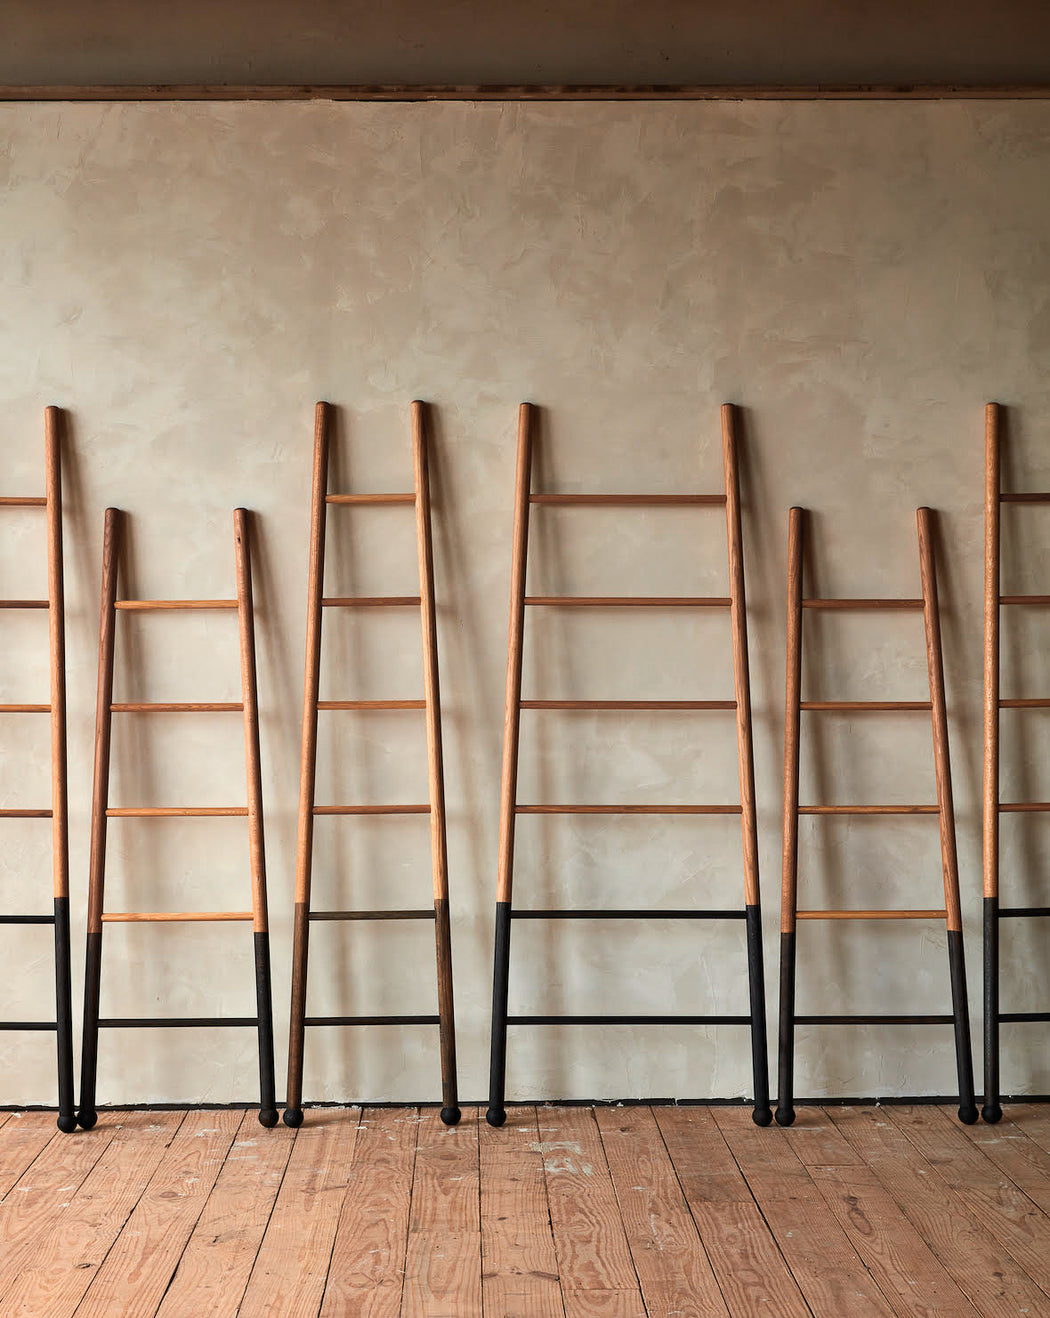 Bloak Ladder - sizes - shelving - Lostine